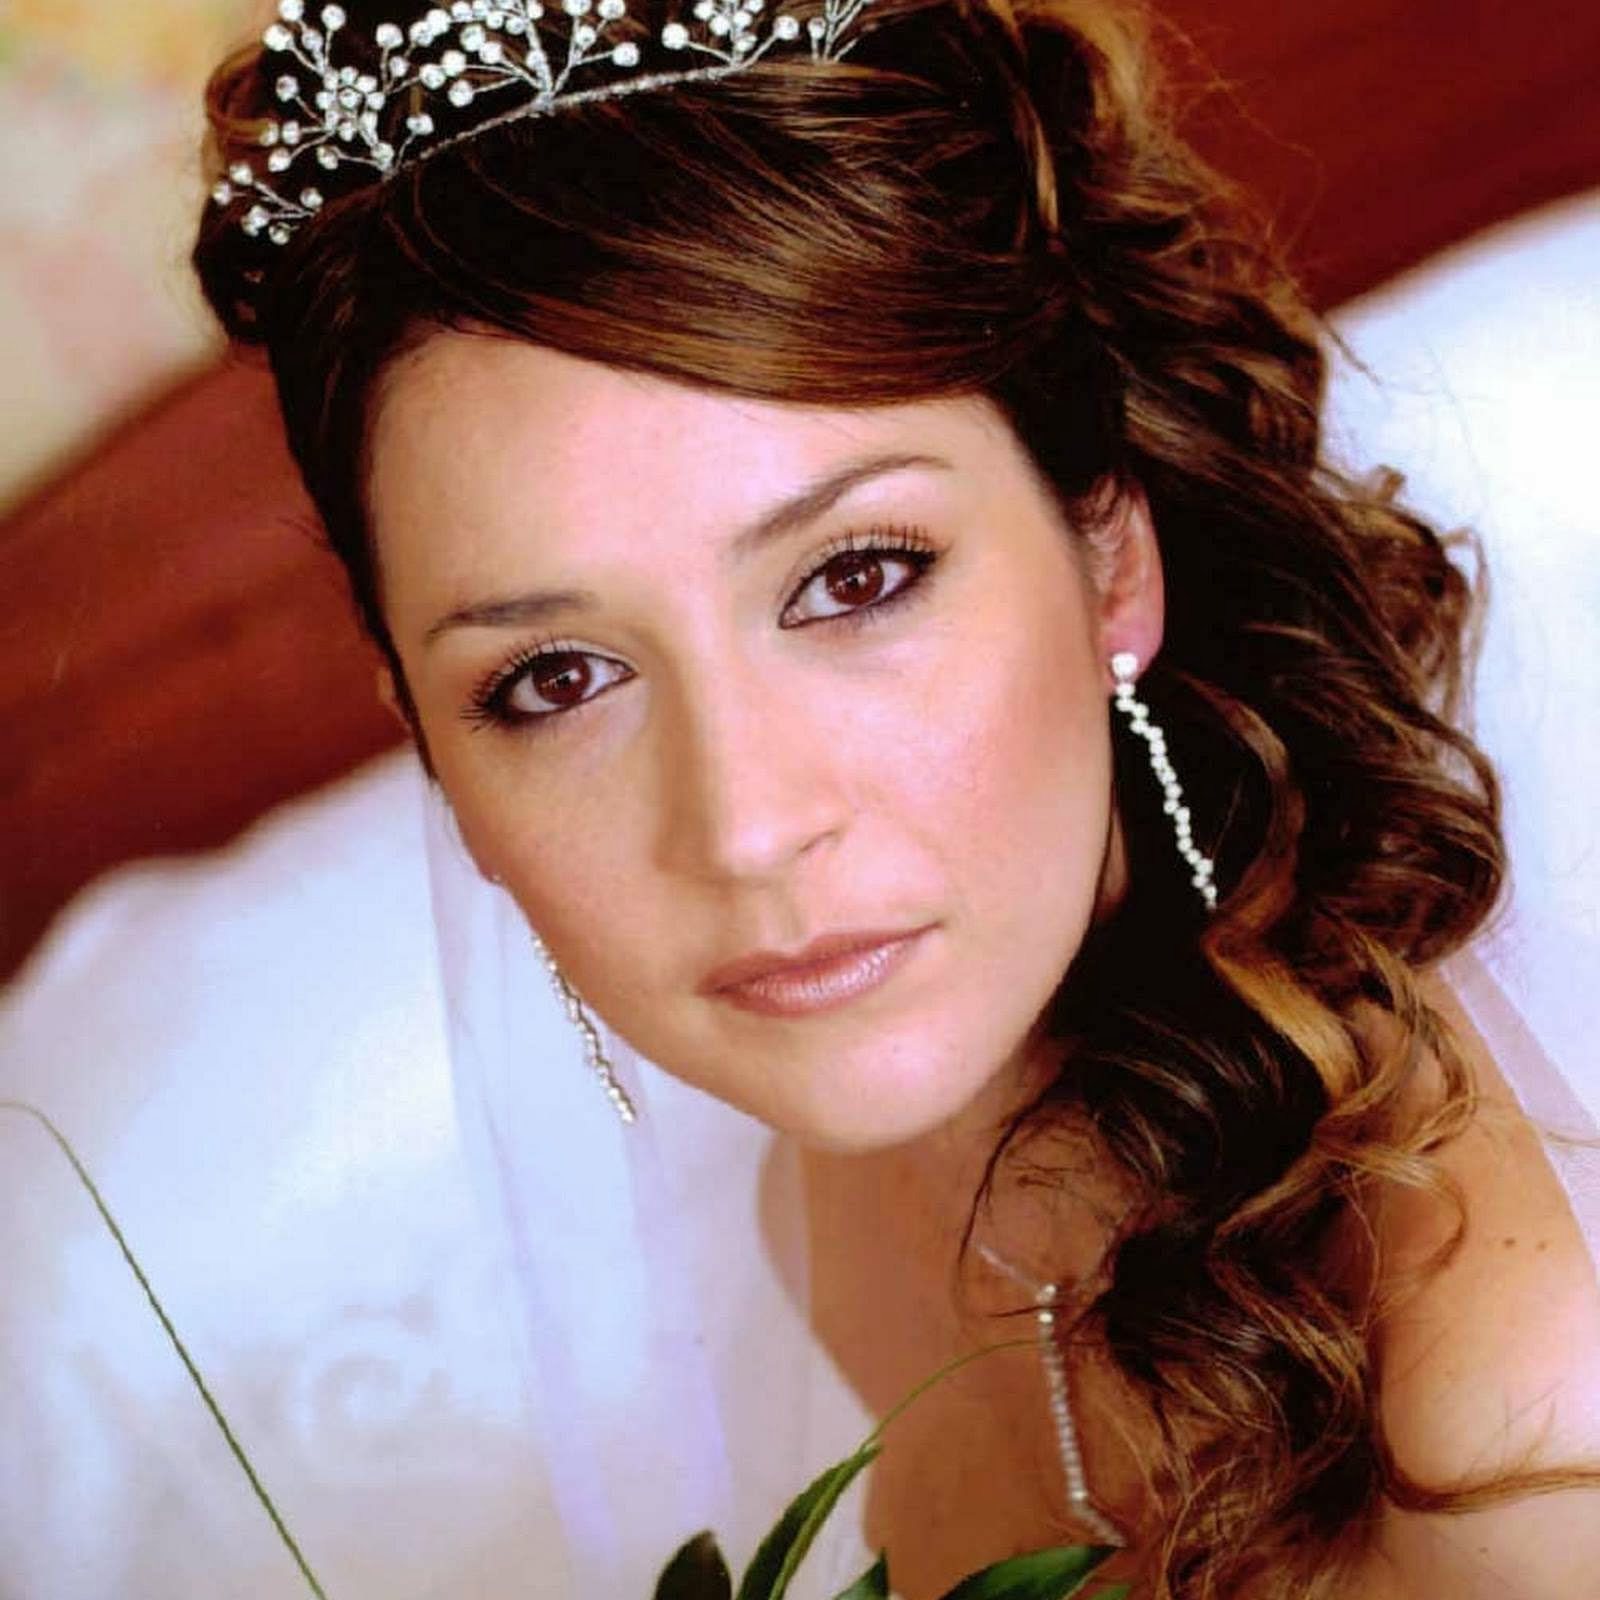 18 Creative And Unique Wedding Hairstyles For Long Hair: Wedding Hairstyles With Tiara 2014